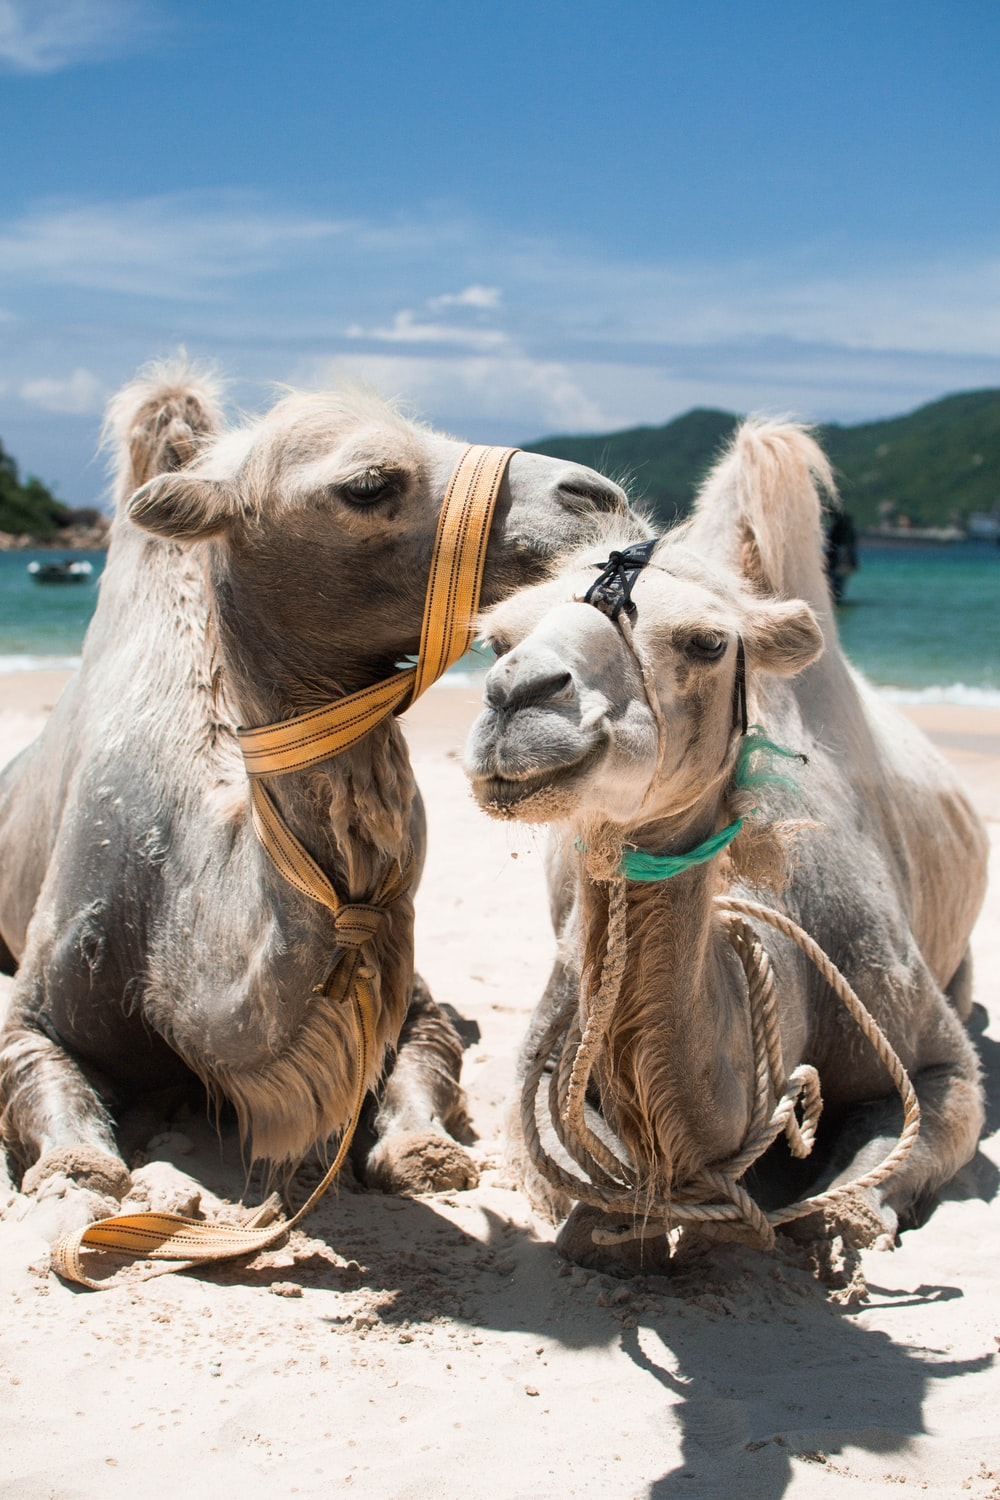 two grey camels